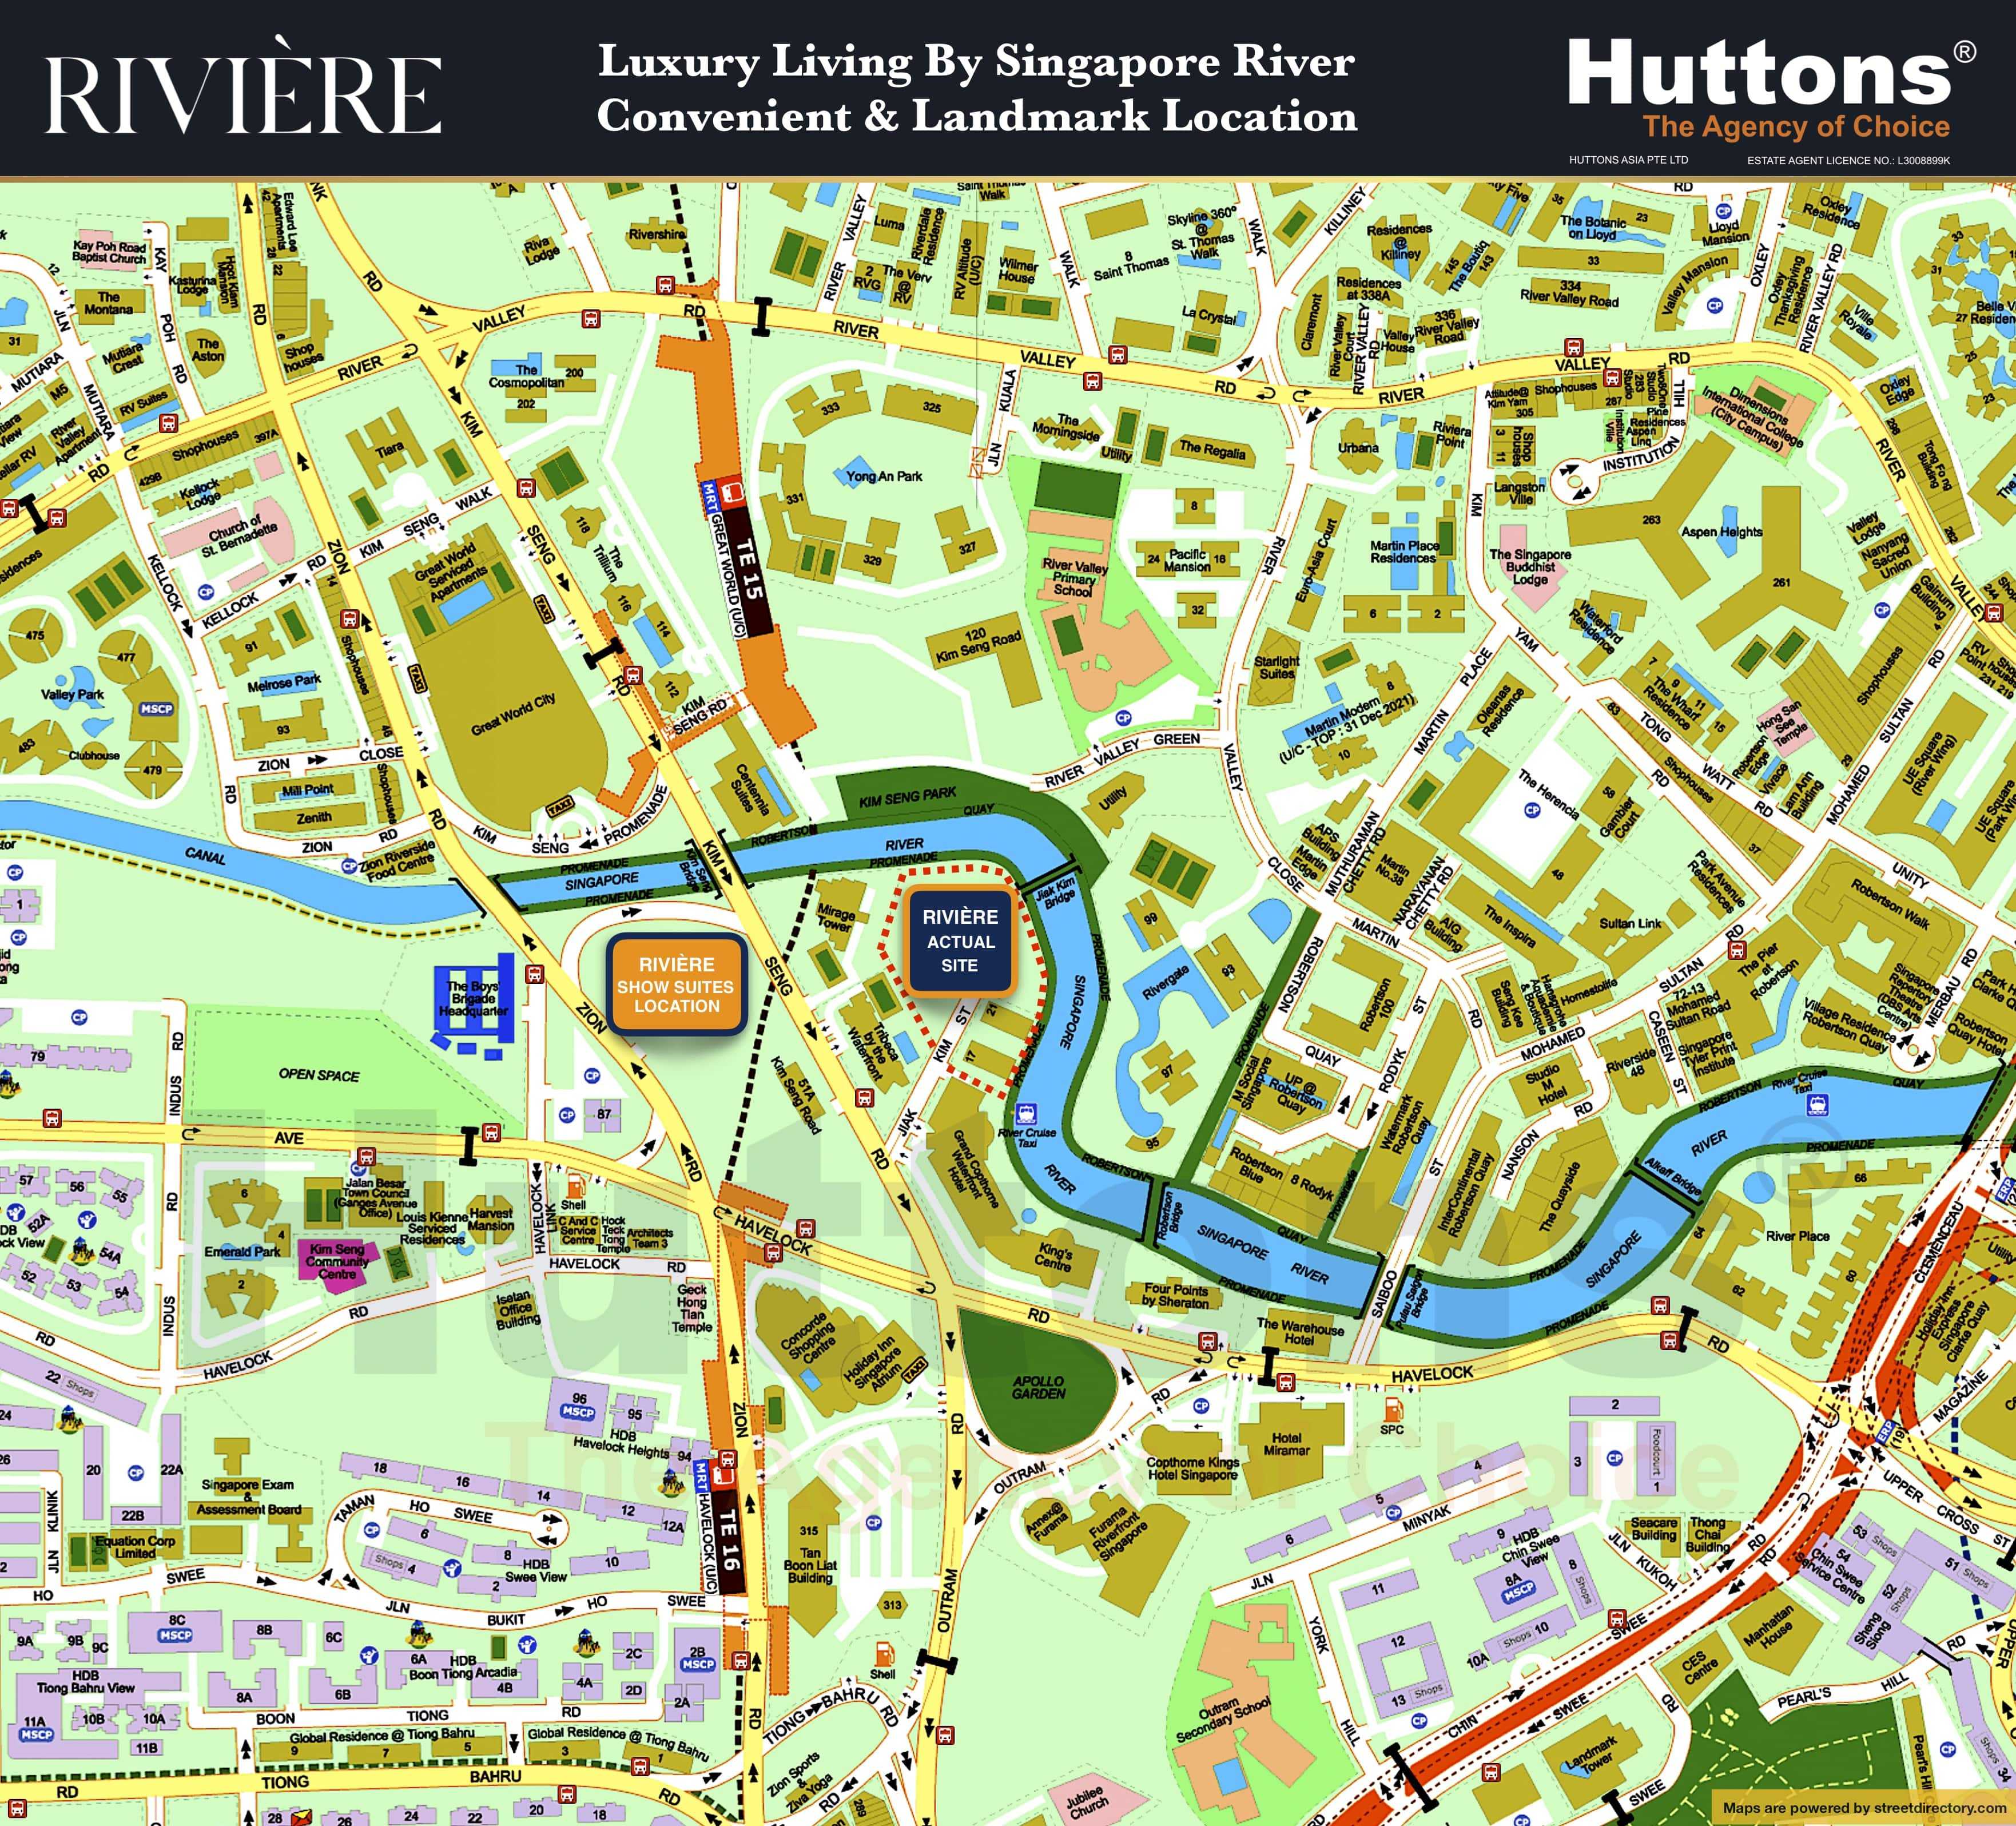 Riviere showflat Location Map